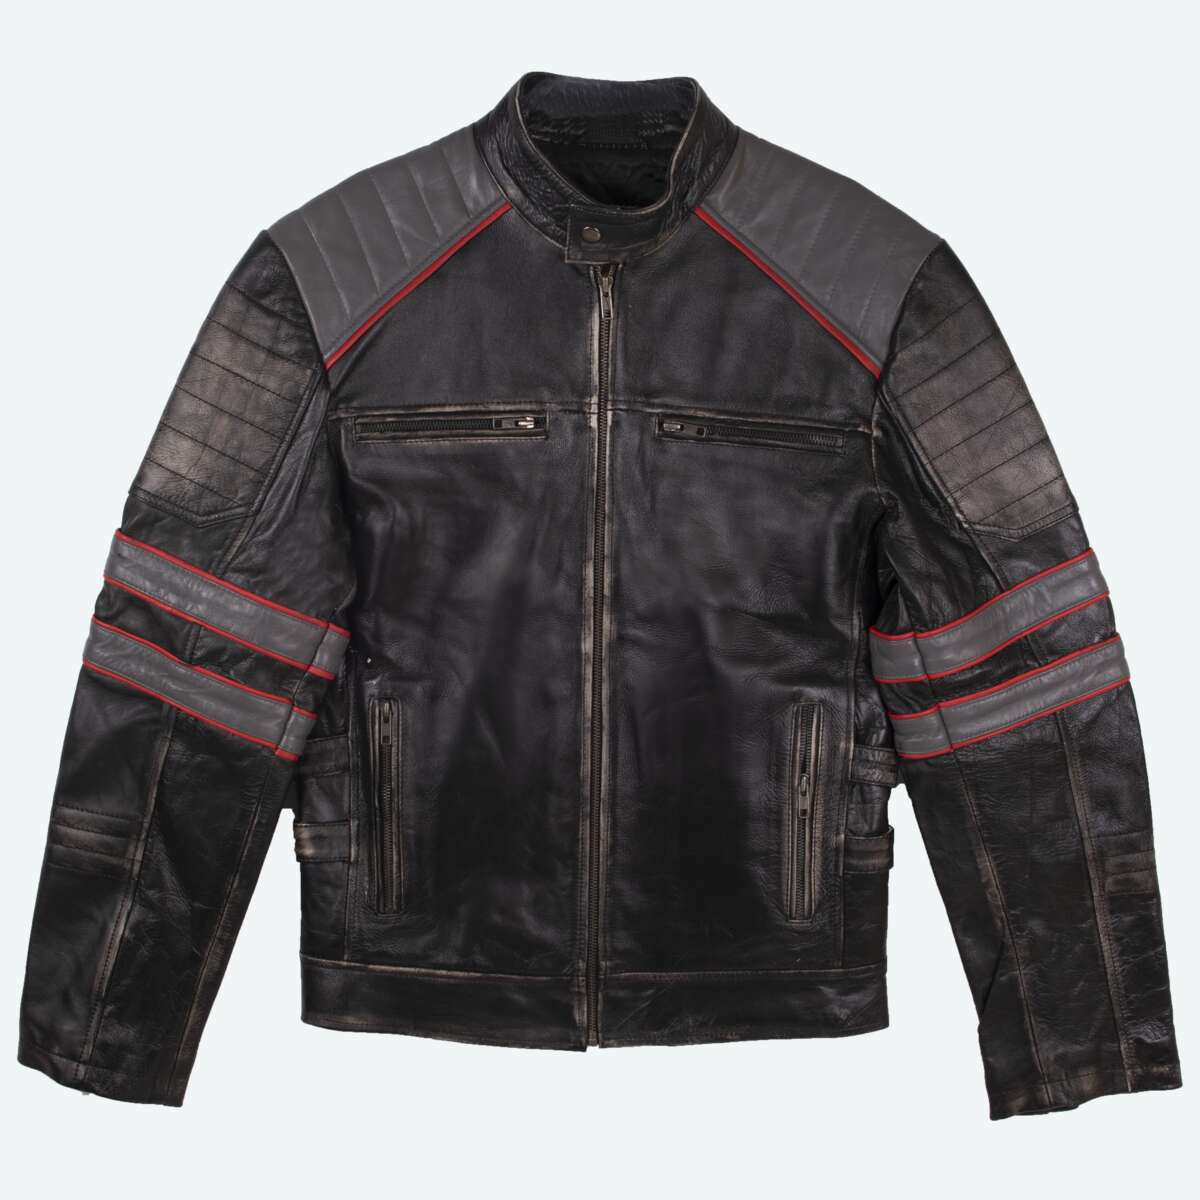 Tri-Color Leather Cafe Racer Jacket